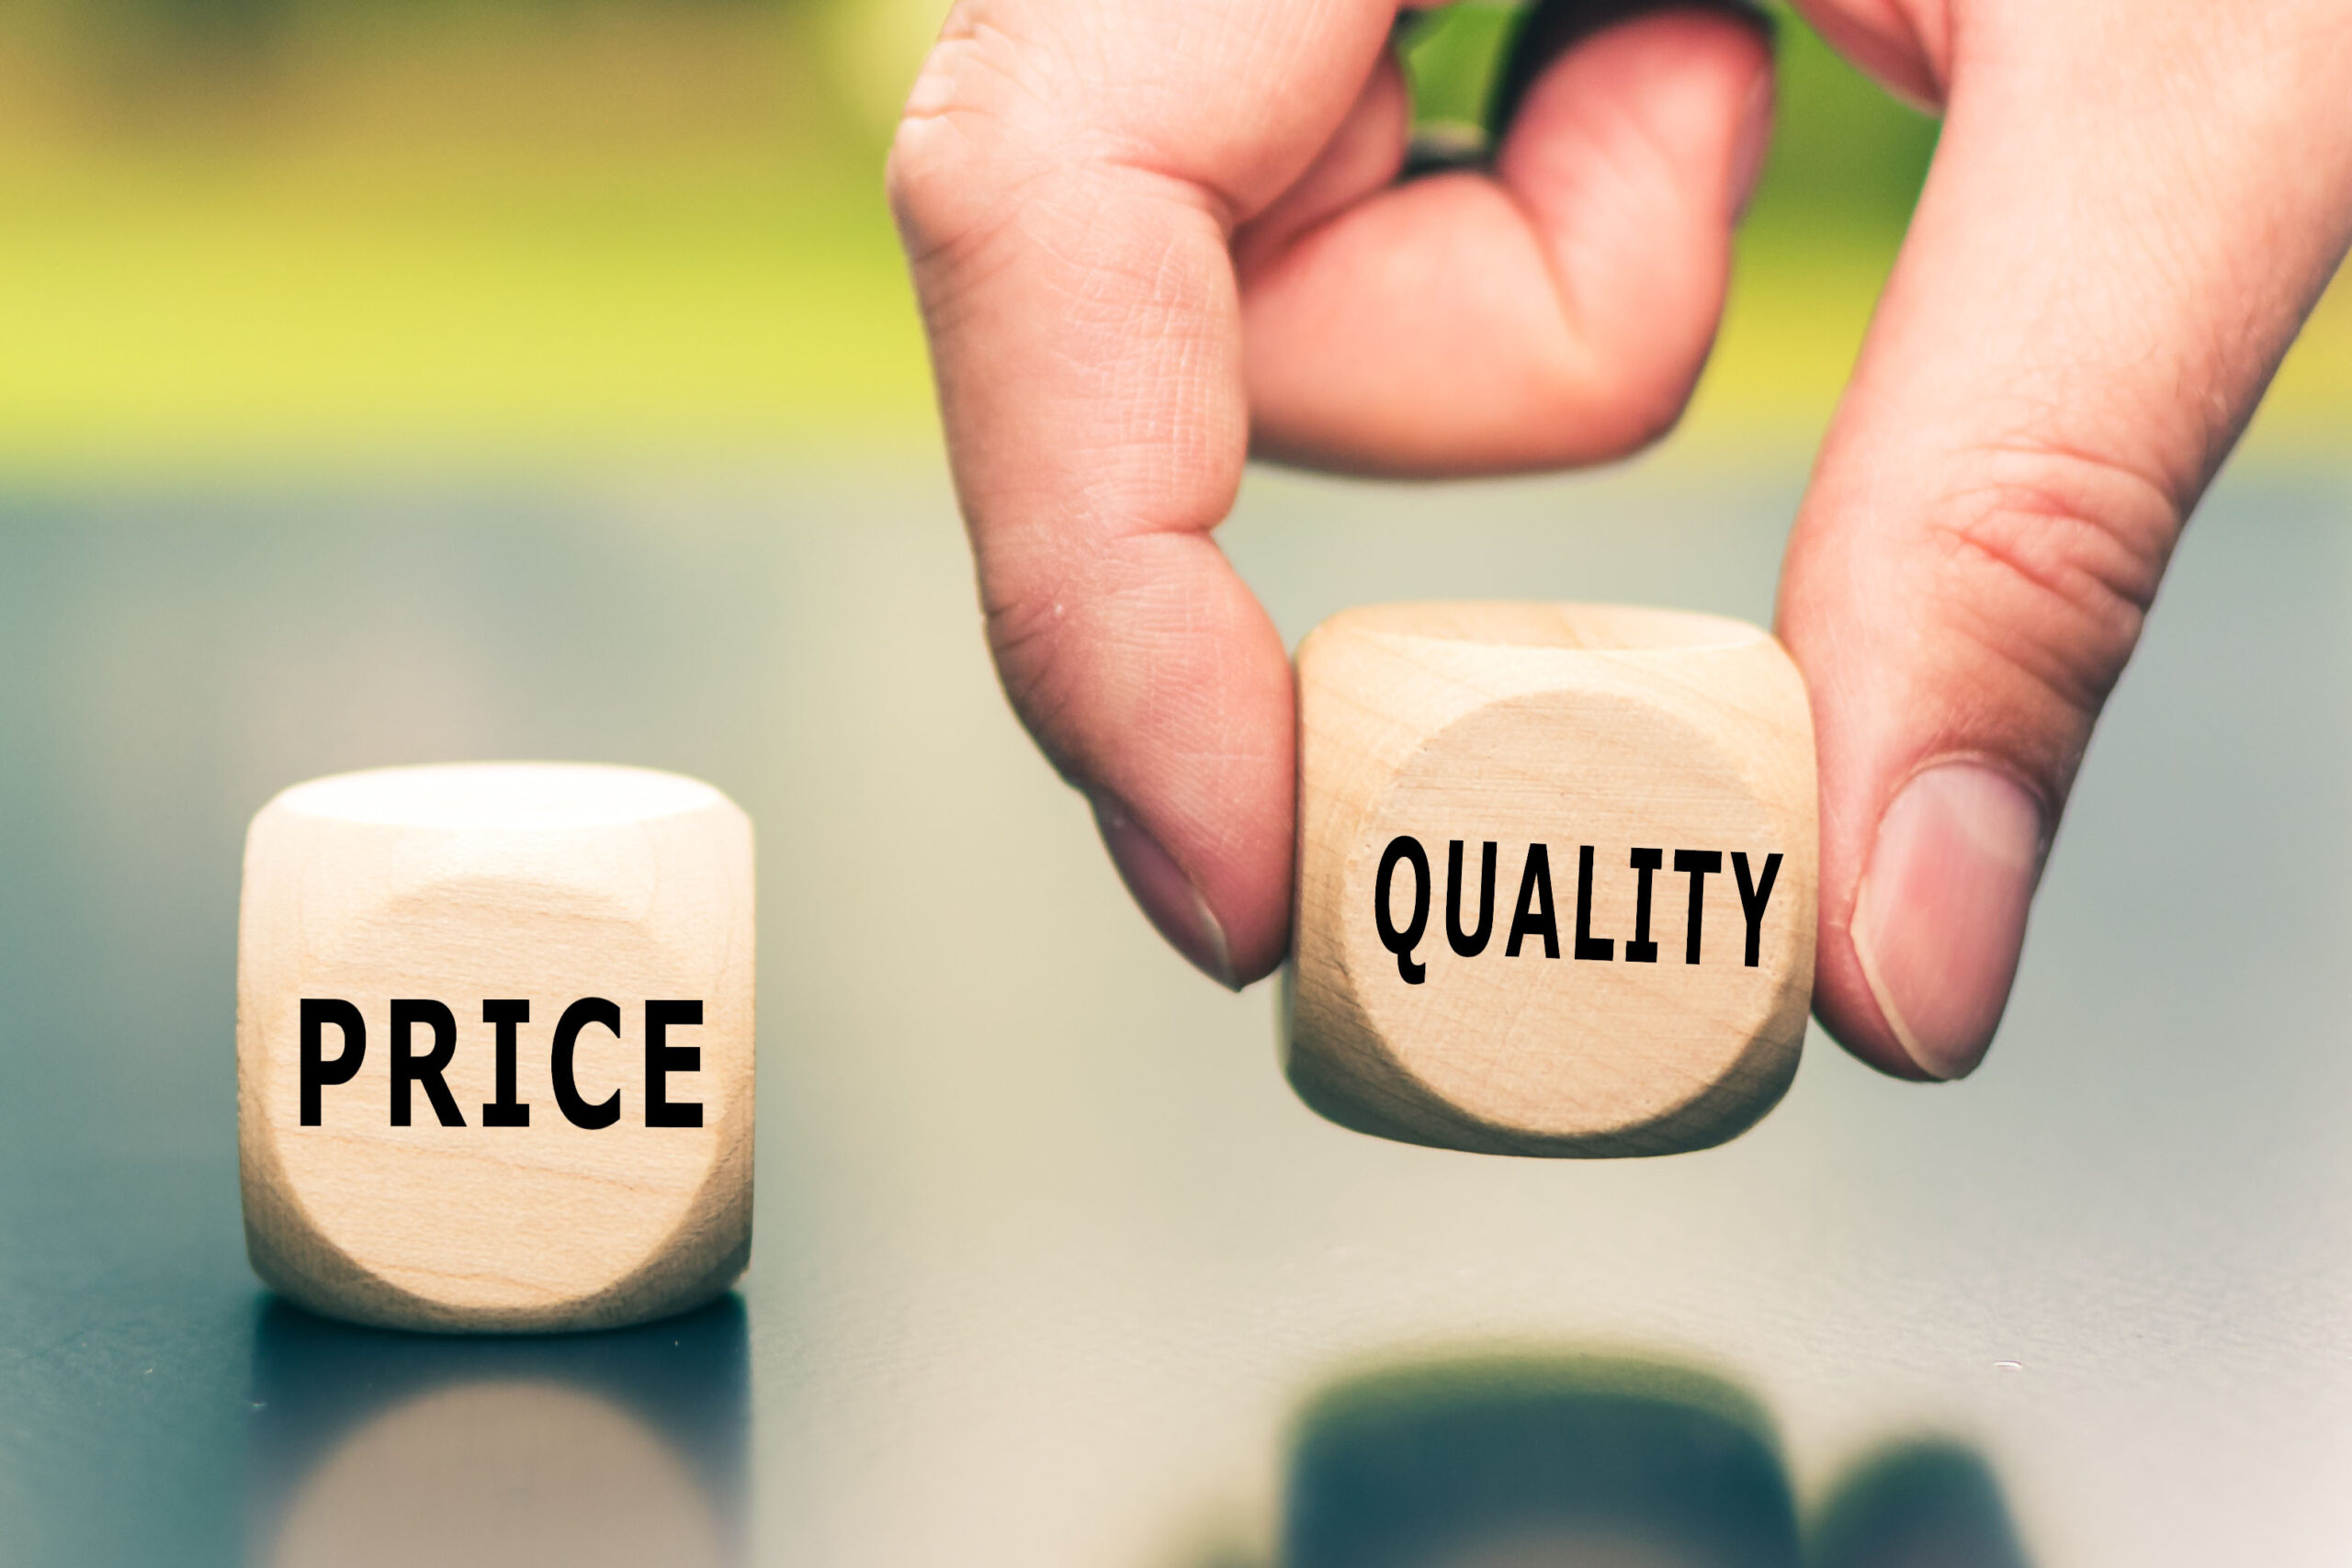 Price versus Quality.